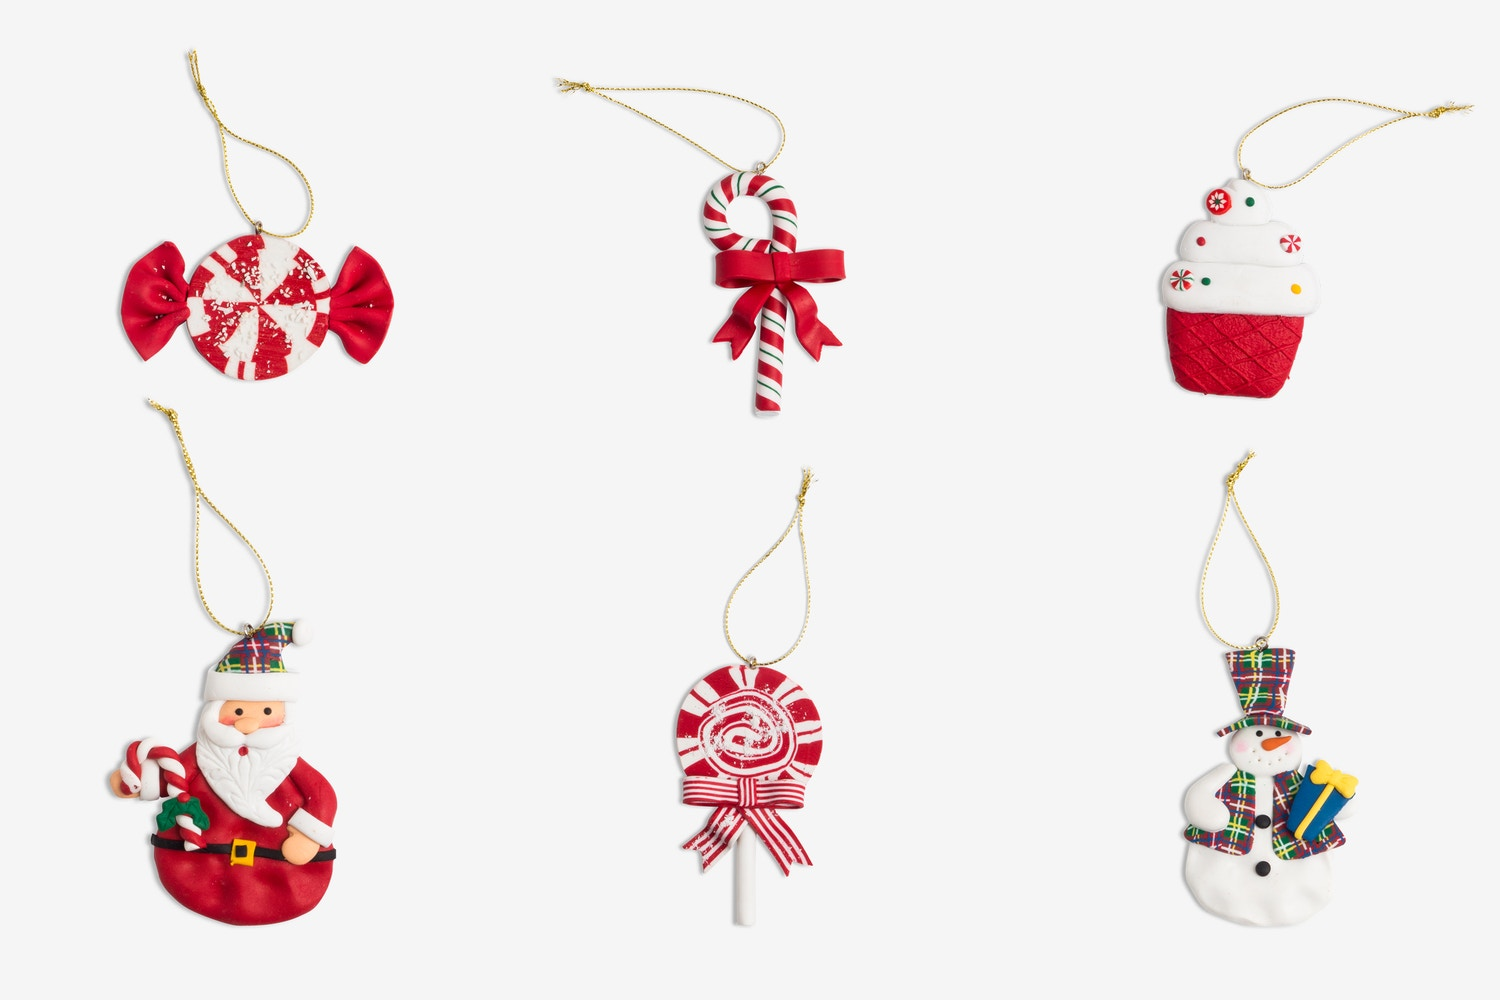 Christmas Decor Isolate Objects 01 por Original Mockups en Original Mockups